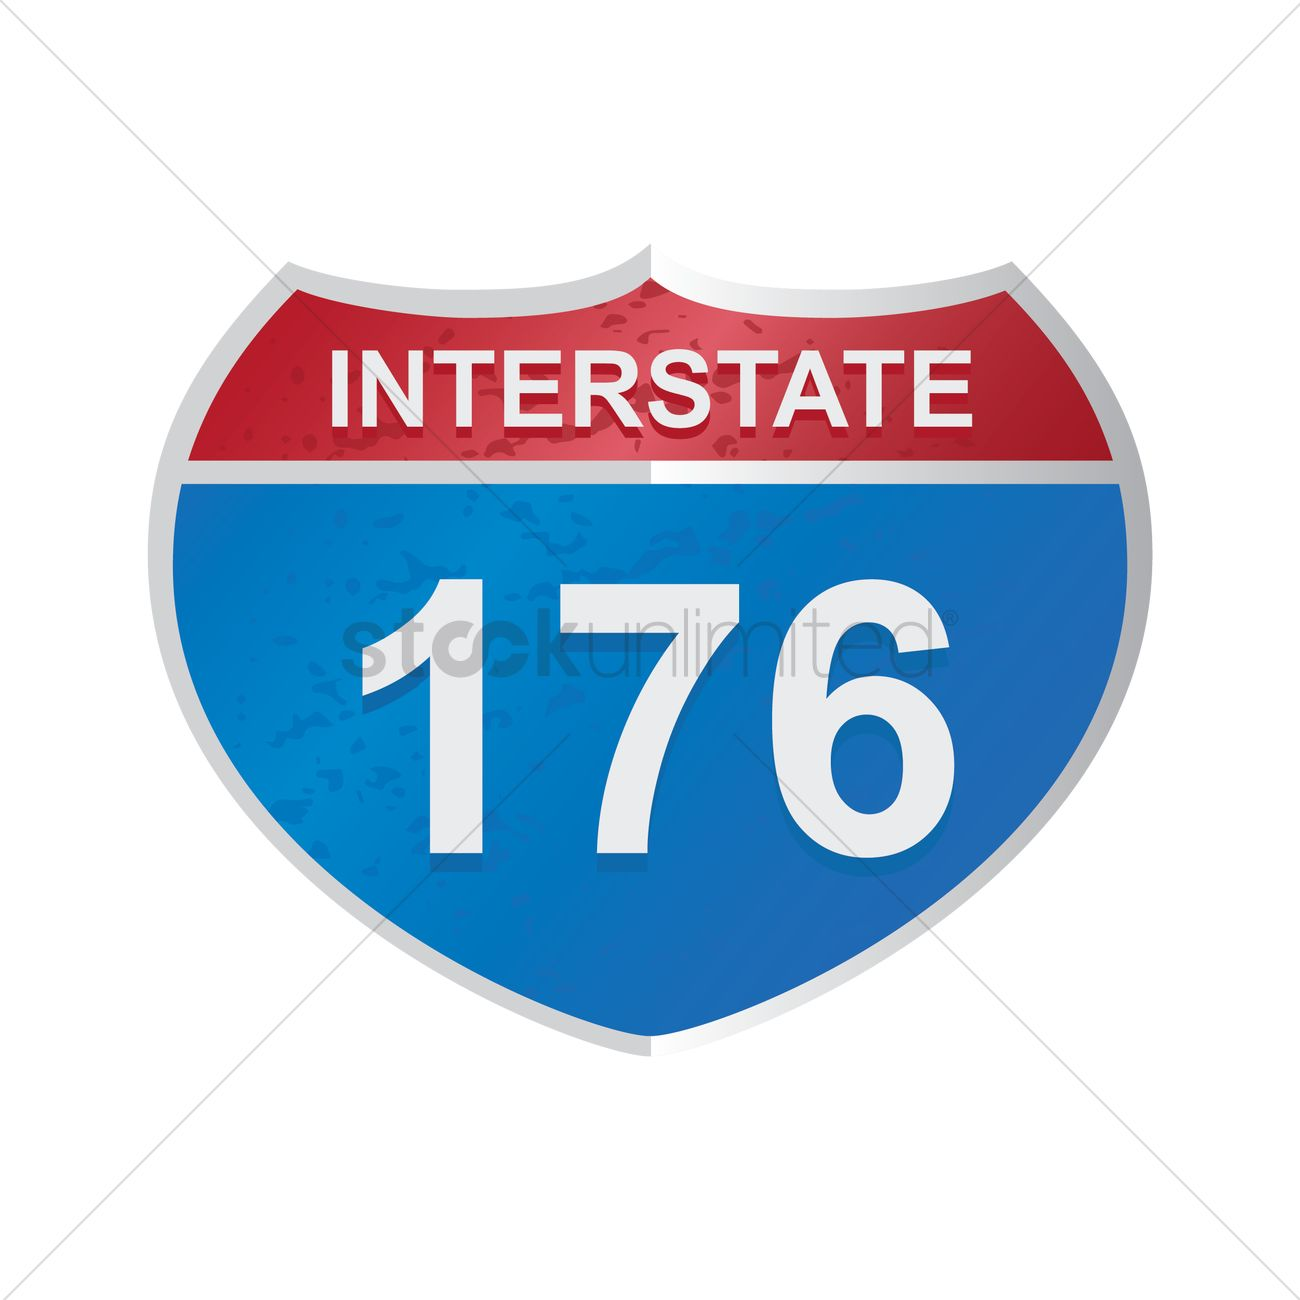 1300x1300 Interstate 176 Route Sign Vector Image